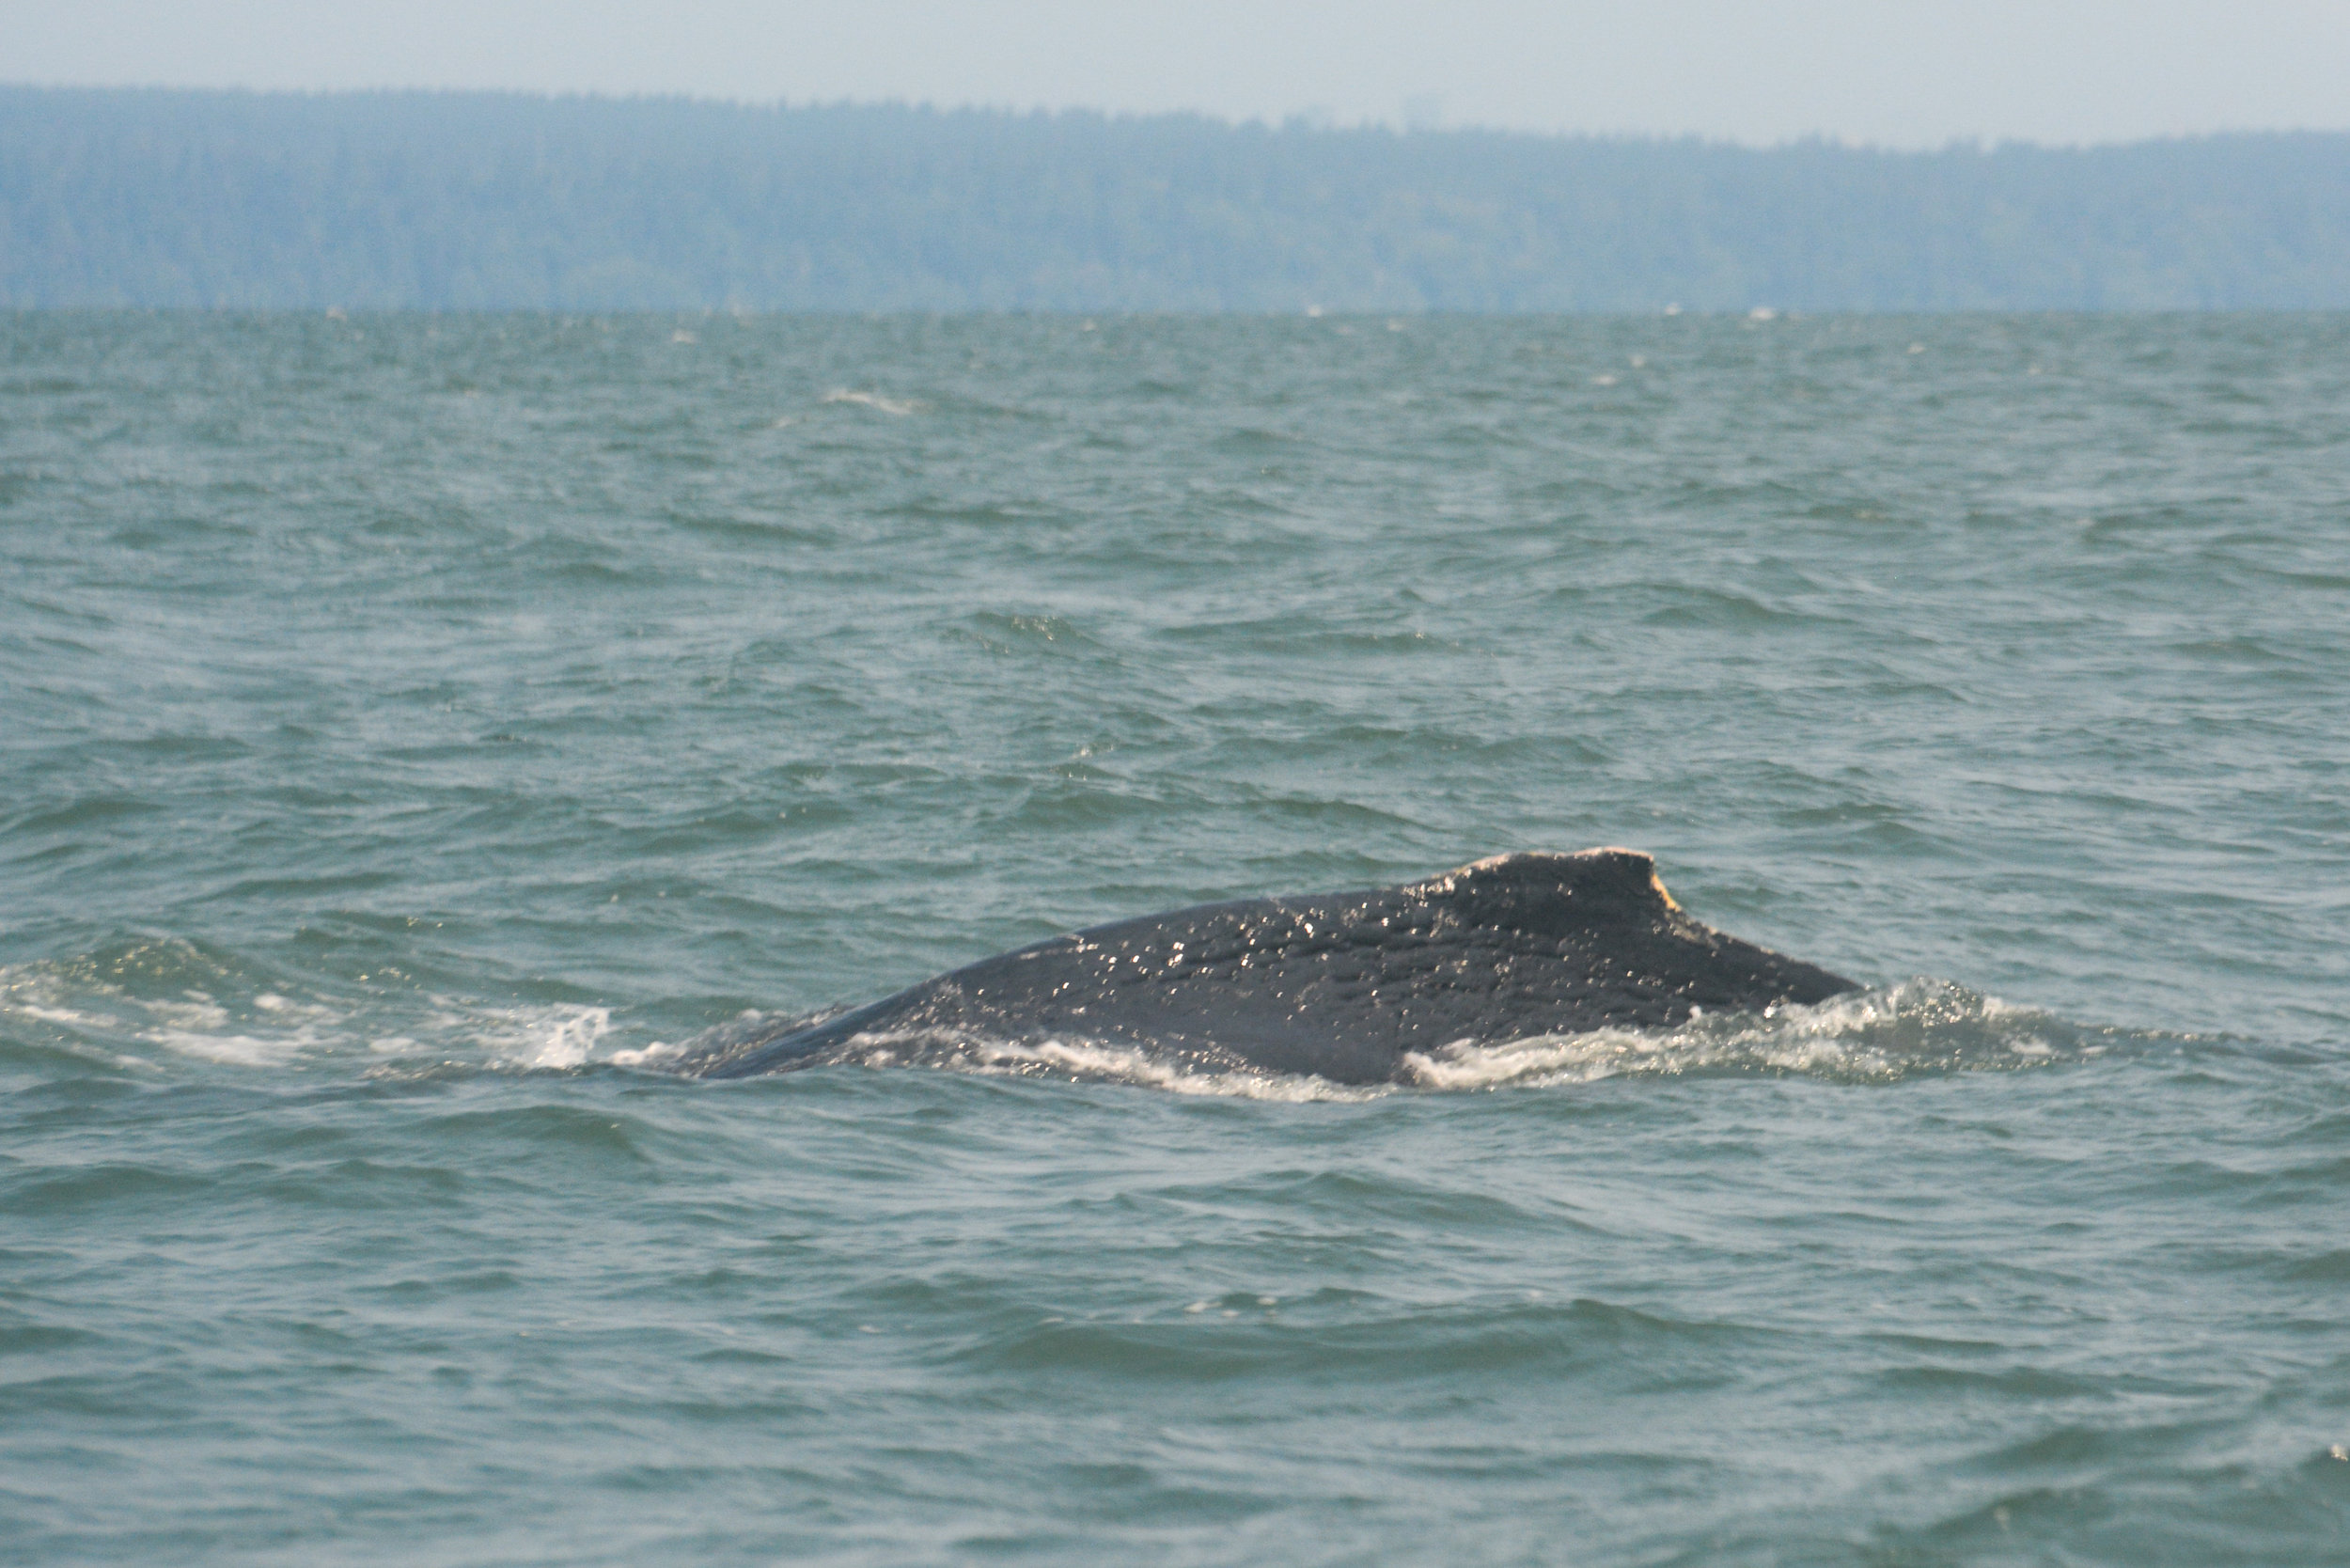 Baby humpback surfacing, see how tiny the dorsal fin is? How cute! Photo by Alanna Vivani.